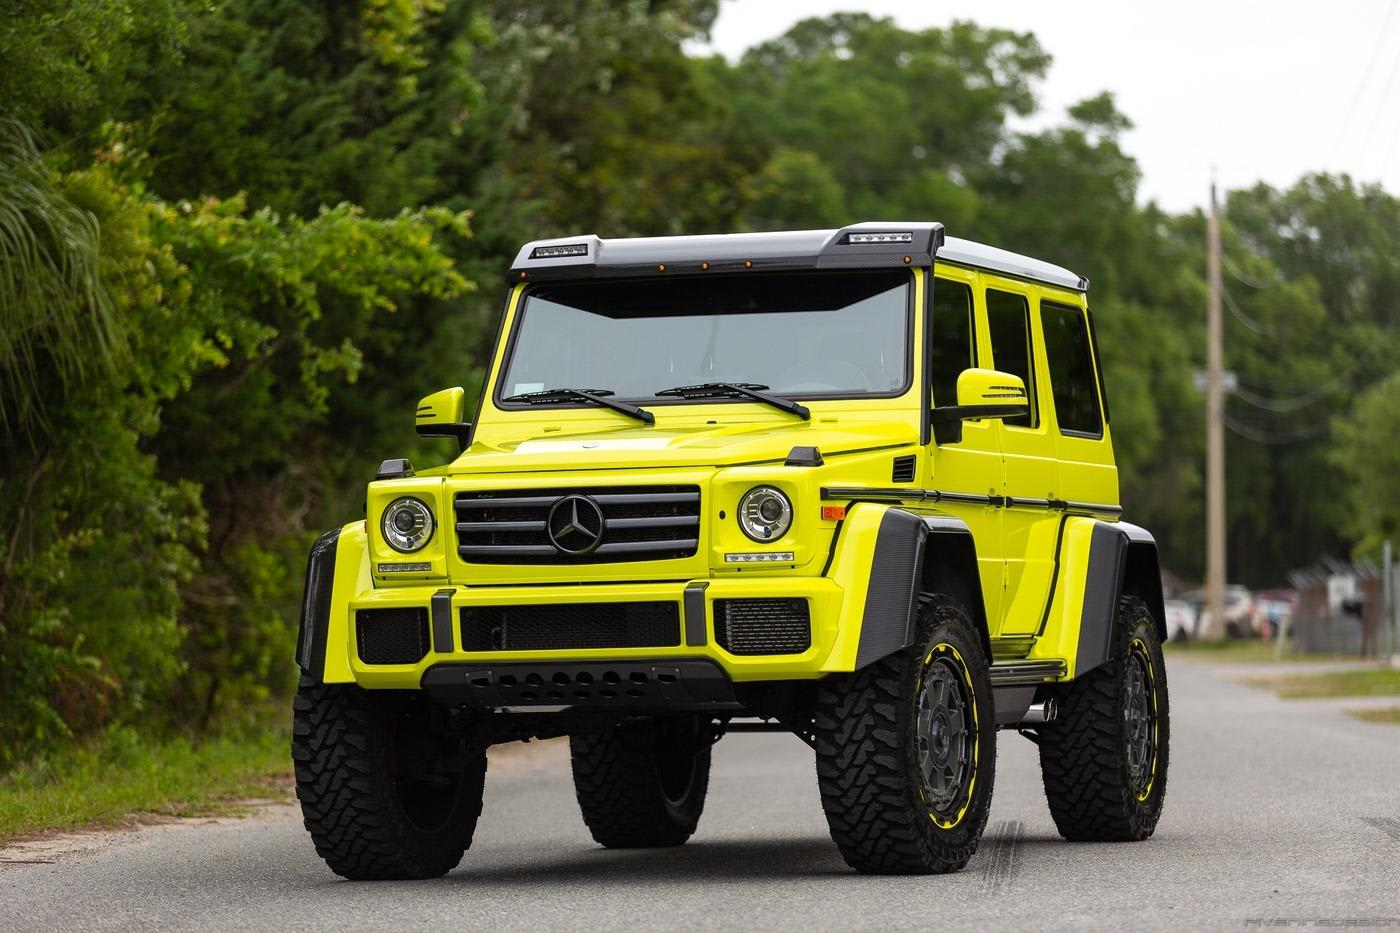 Automobile Exporter of makes,models,Land rover range rover,Mercedes-Benz G-Class G550,Toyota Camry